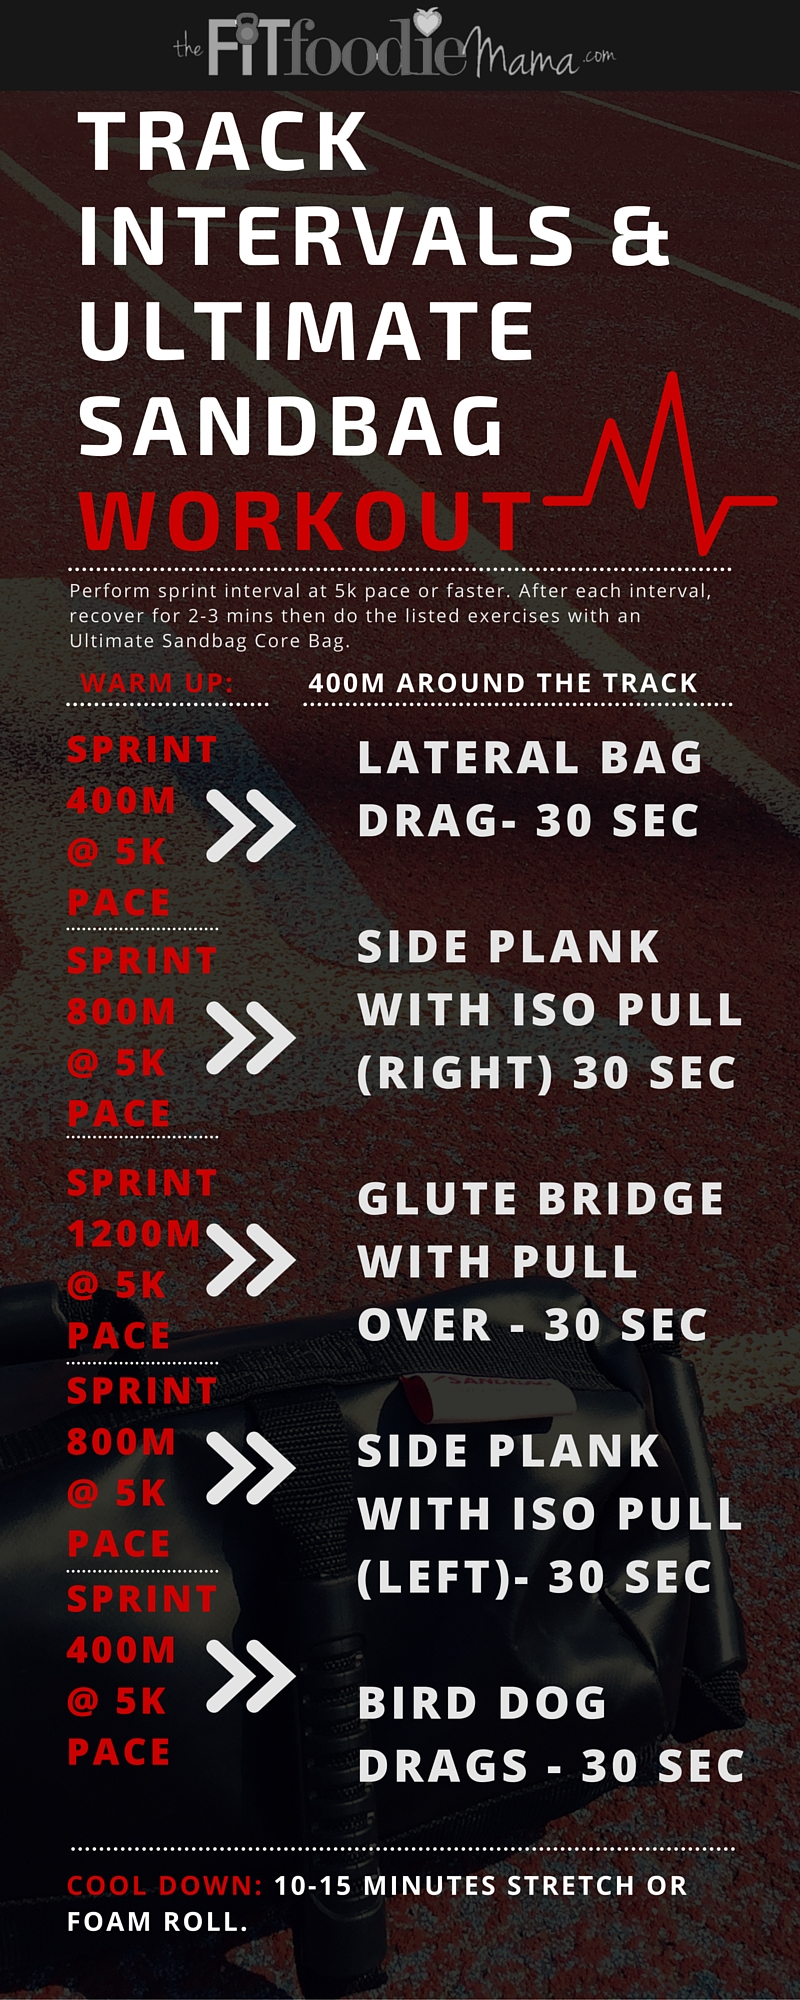 DVRT @UltimateSandbag Track Intervals & Core Workout to improve speed, prevent injuries and strengthen your core!   Includes exercise infographic for all of the DVRT Ultimate Sandbag exercises! http://thefitfoodiemama.com/dvrt-ultimate-sandbag-track-core-workout/